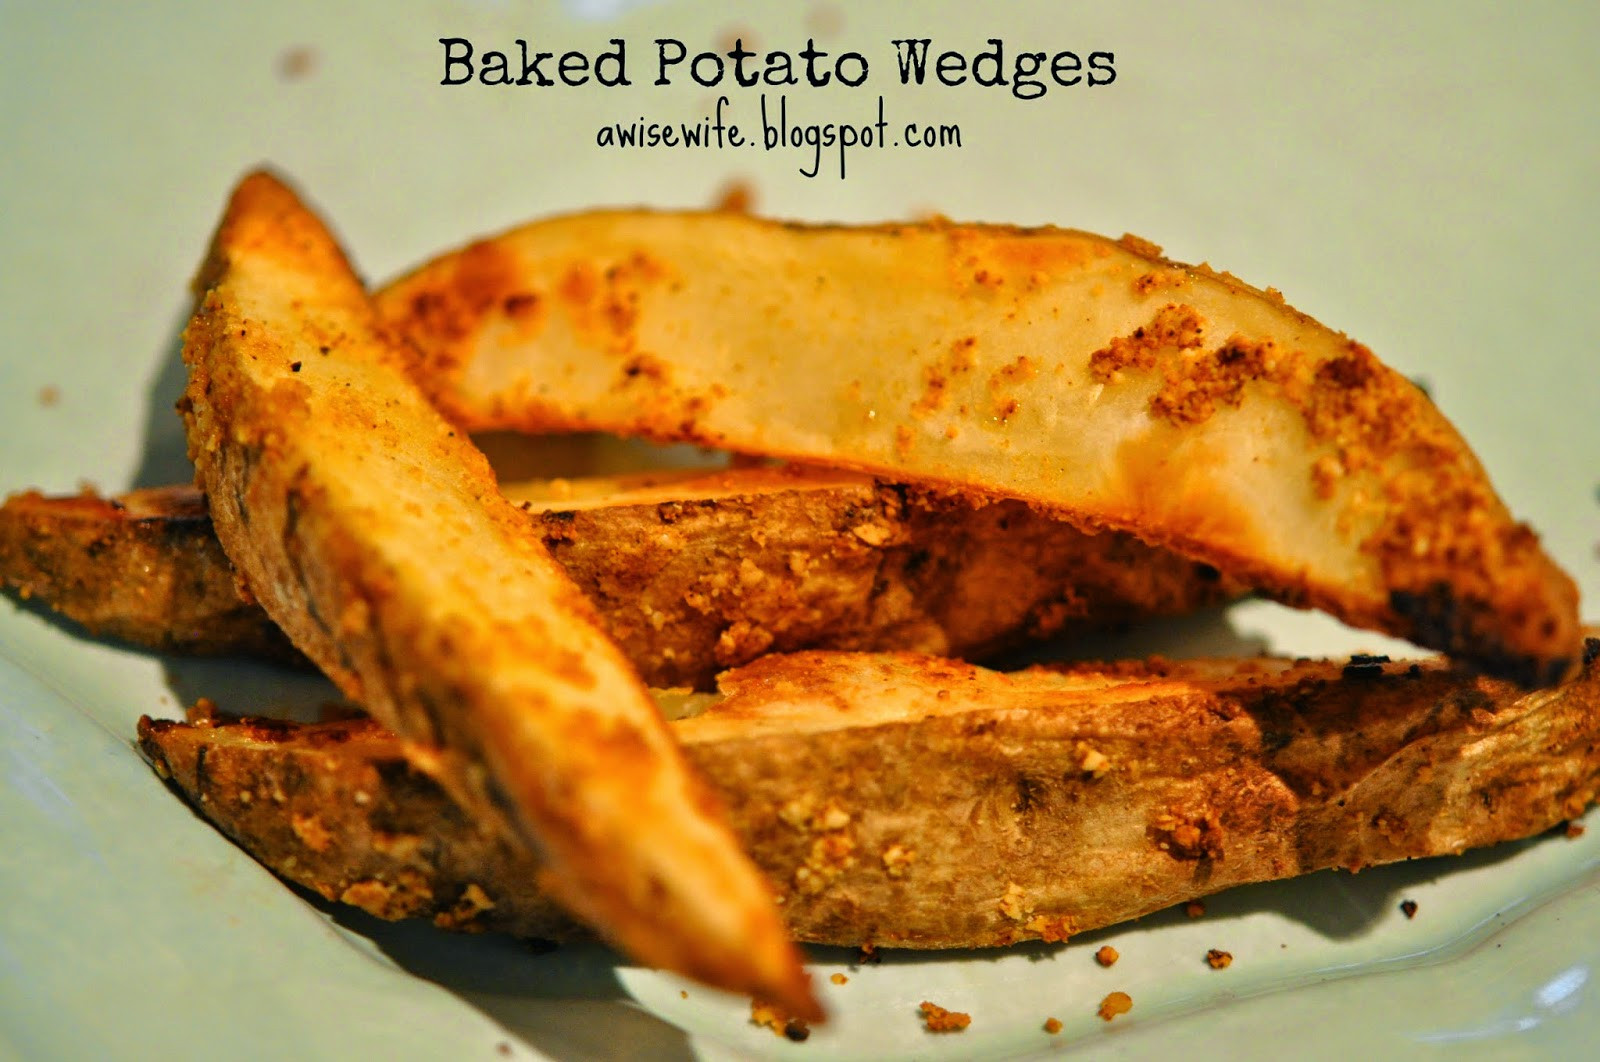 Potato Wedges Baked  Life of a Wise Wife Baked Potato Wedges